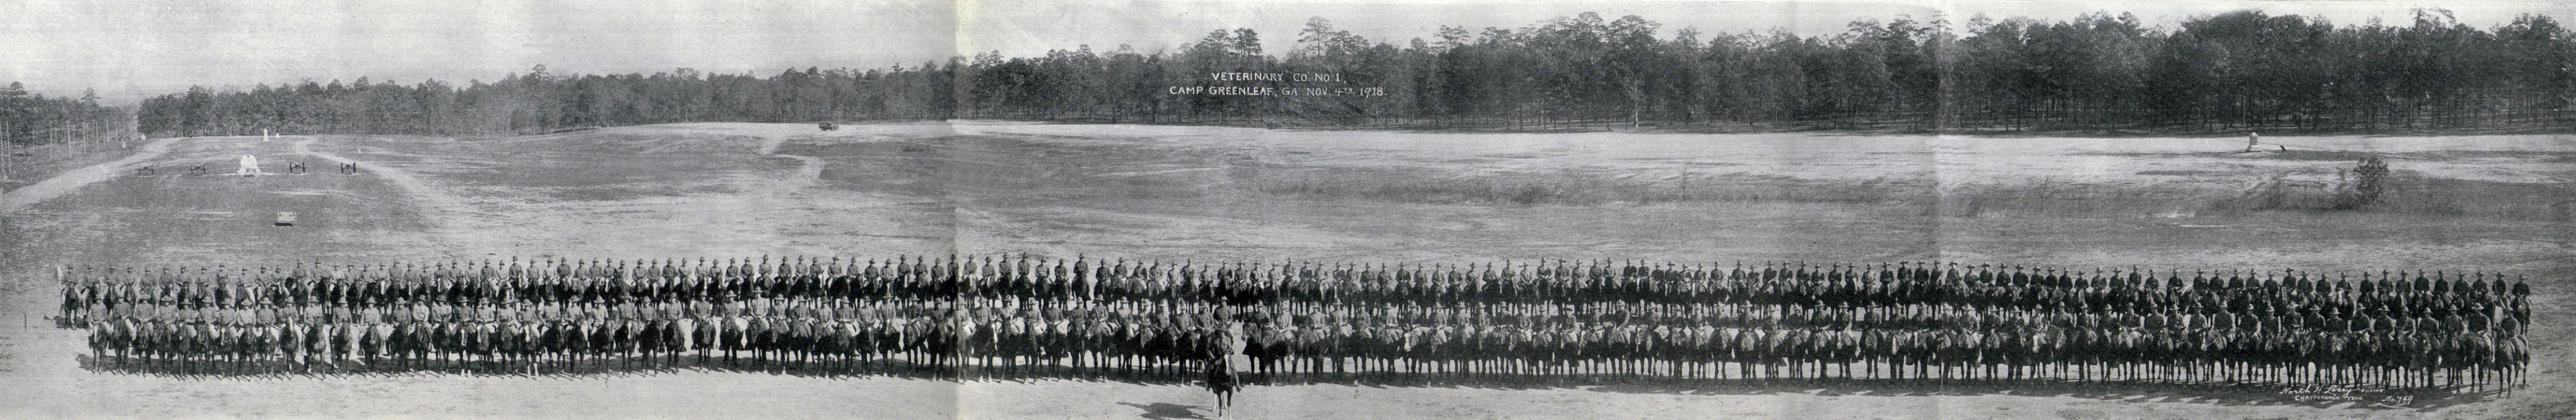 GK veterinarycomounted1918